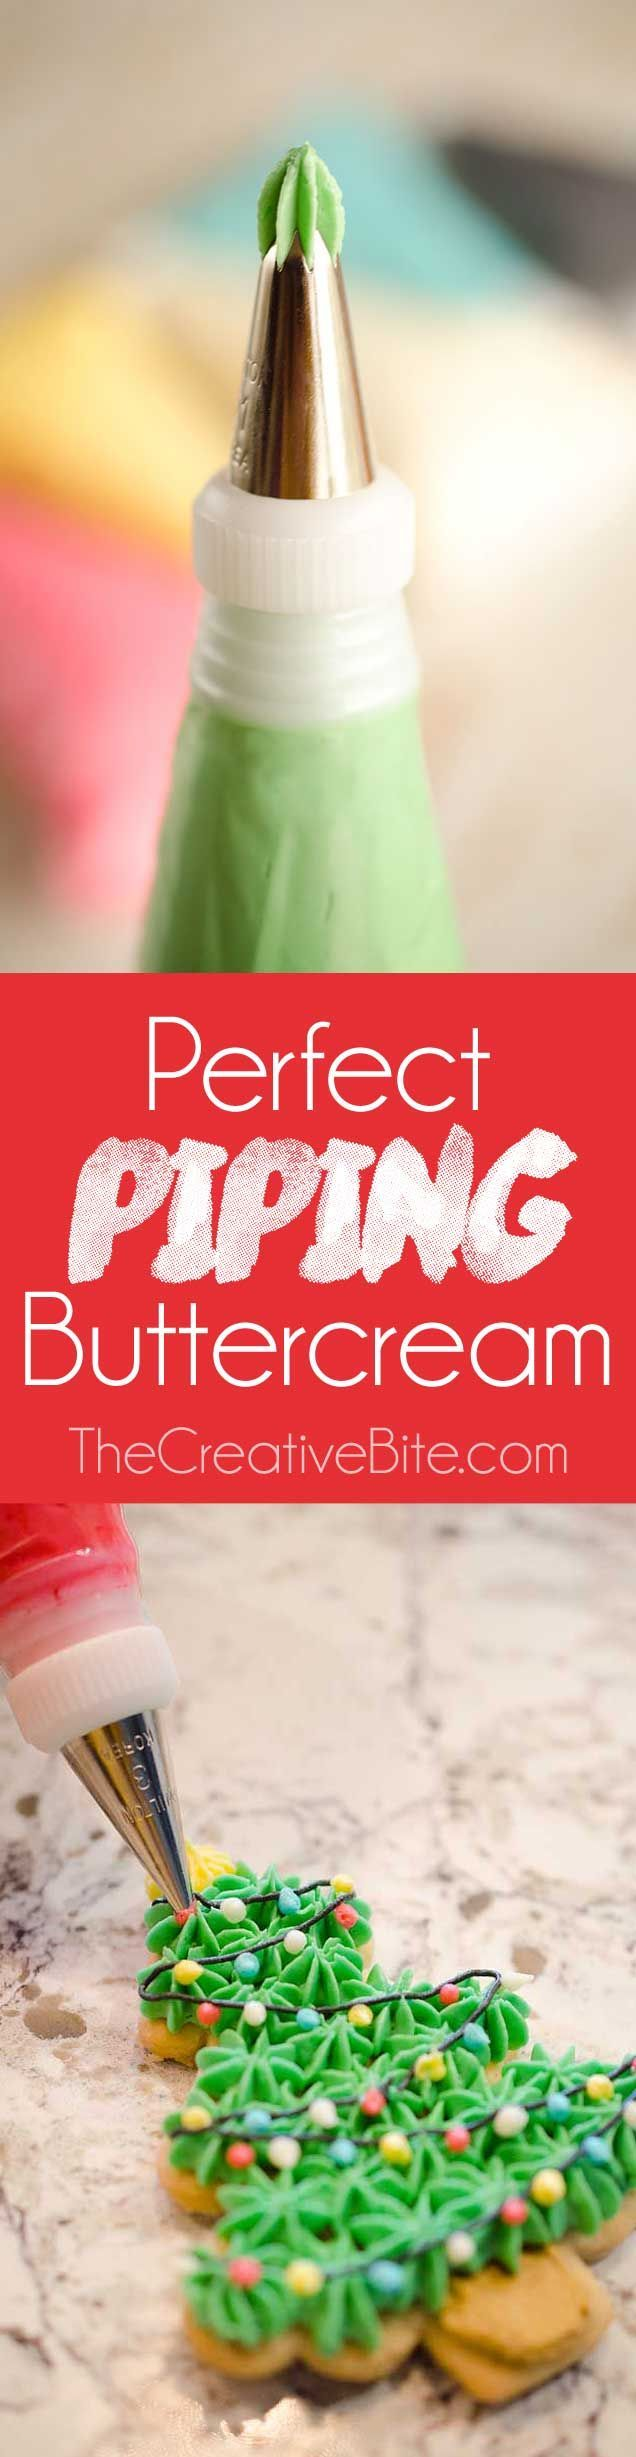 Perfect Piping Buttercream is the absolute best recipe for ...